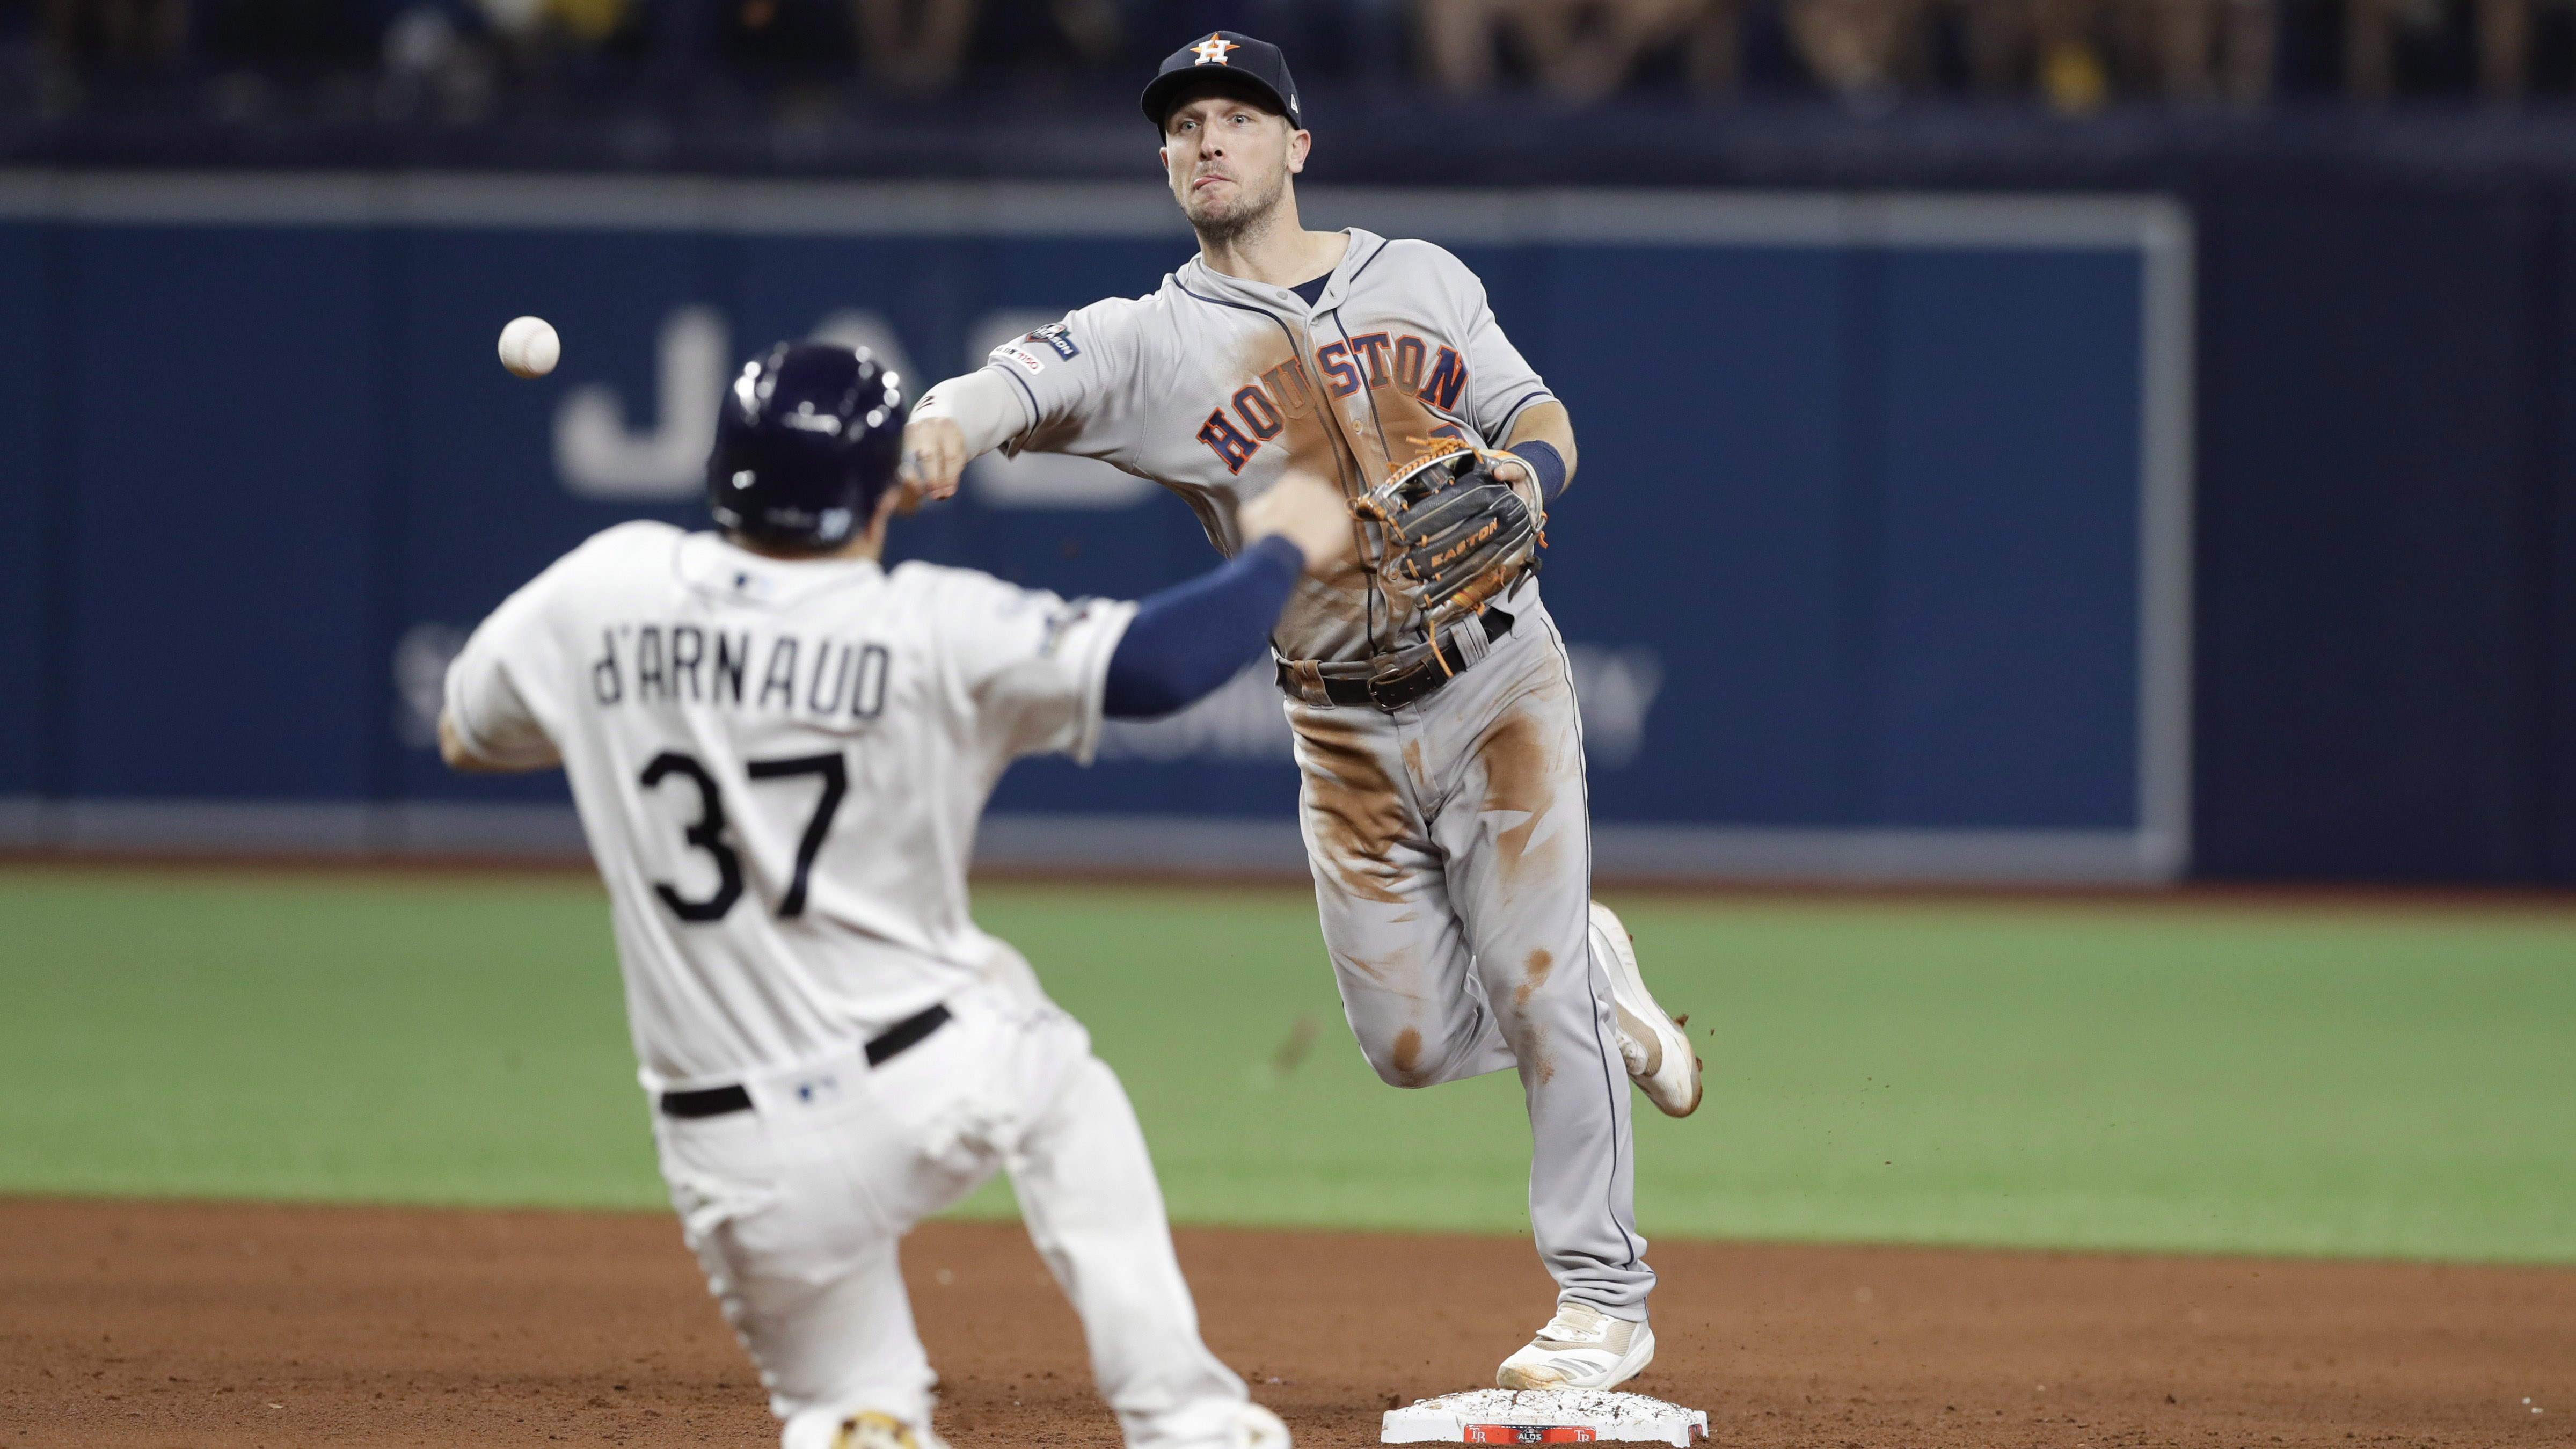 astros rays game 5